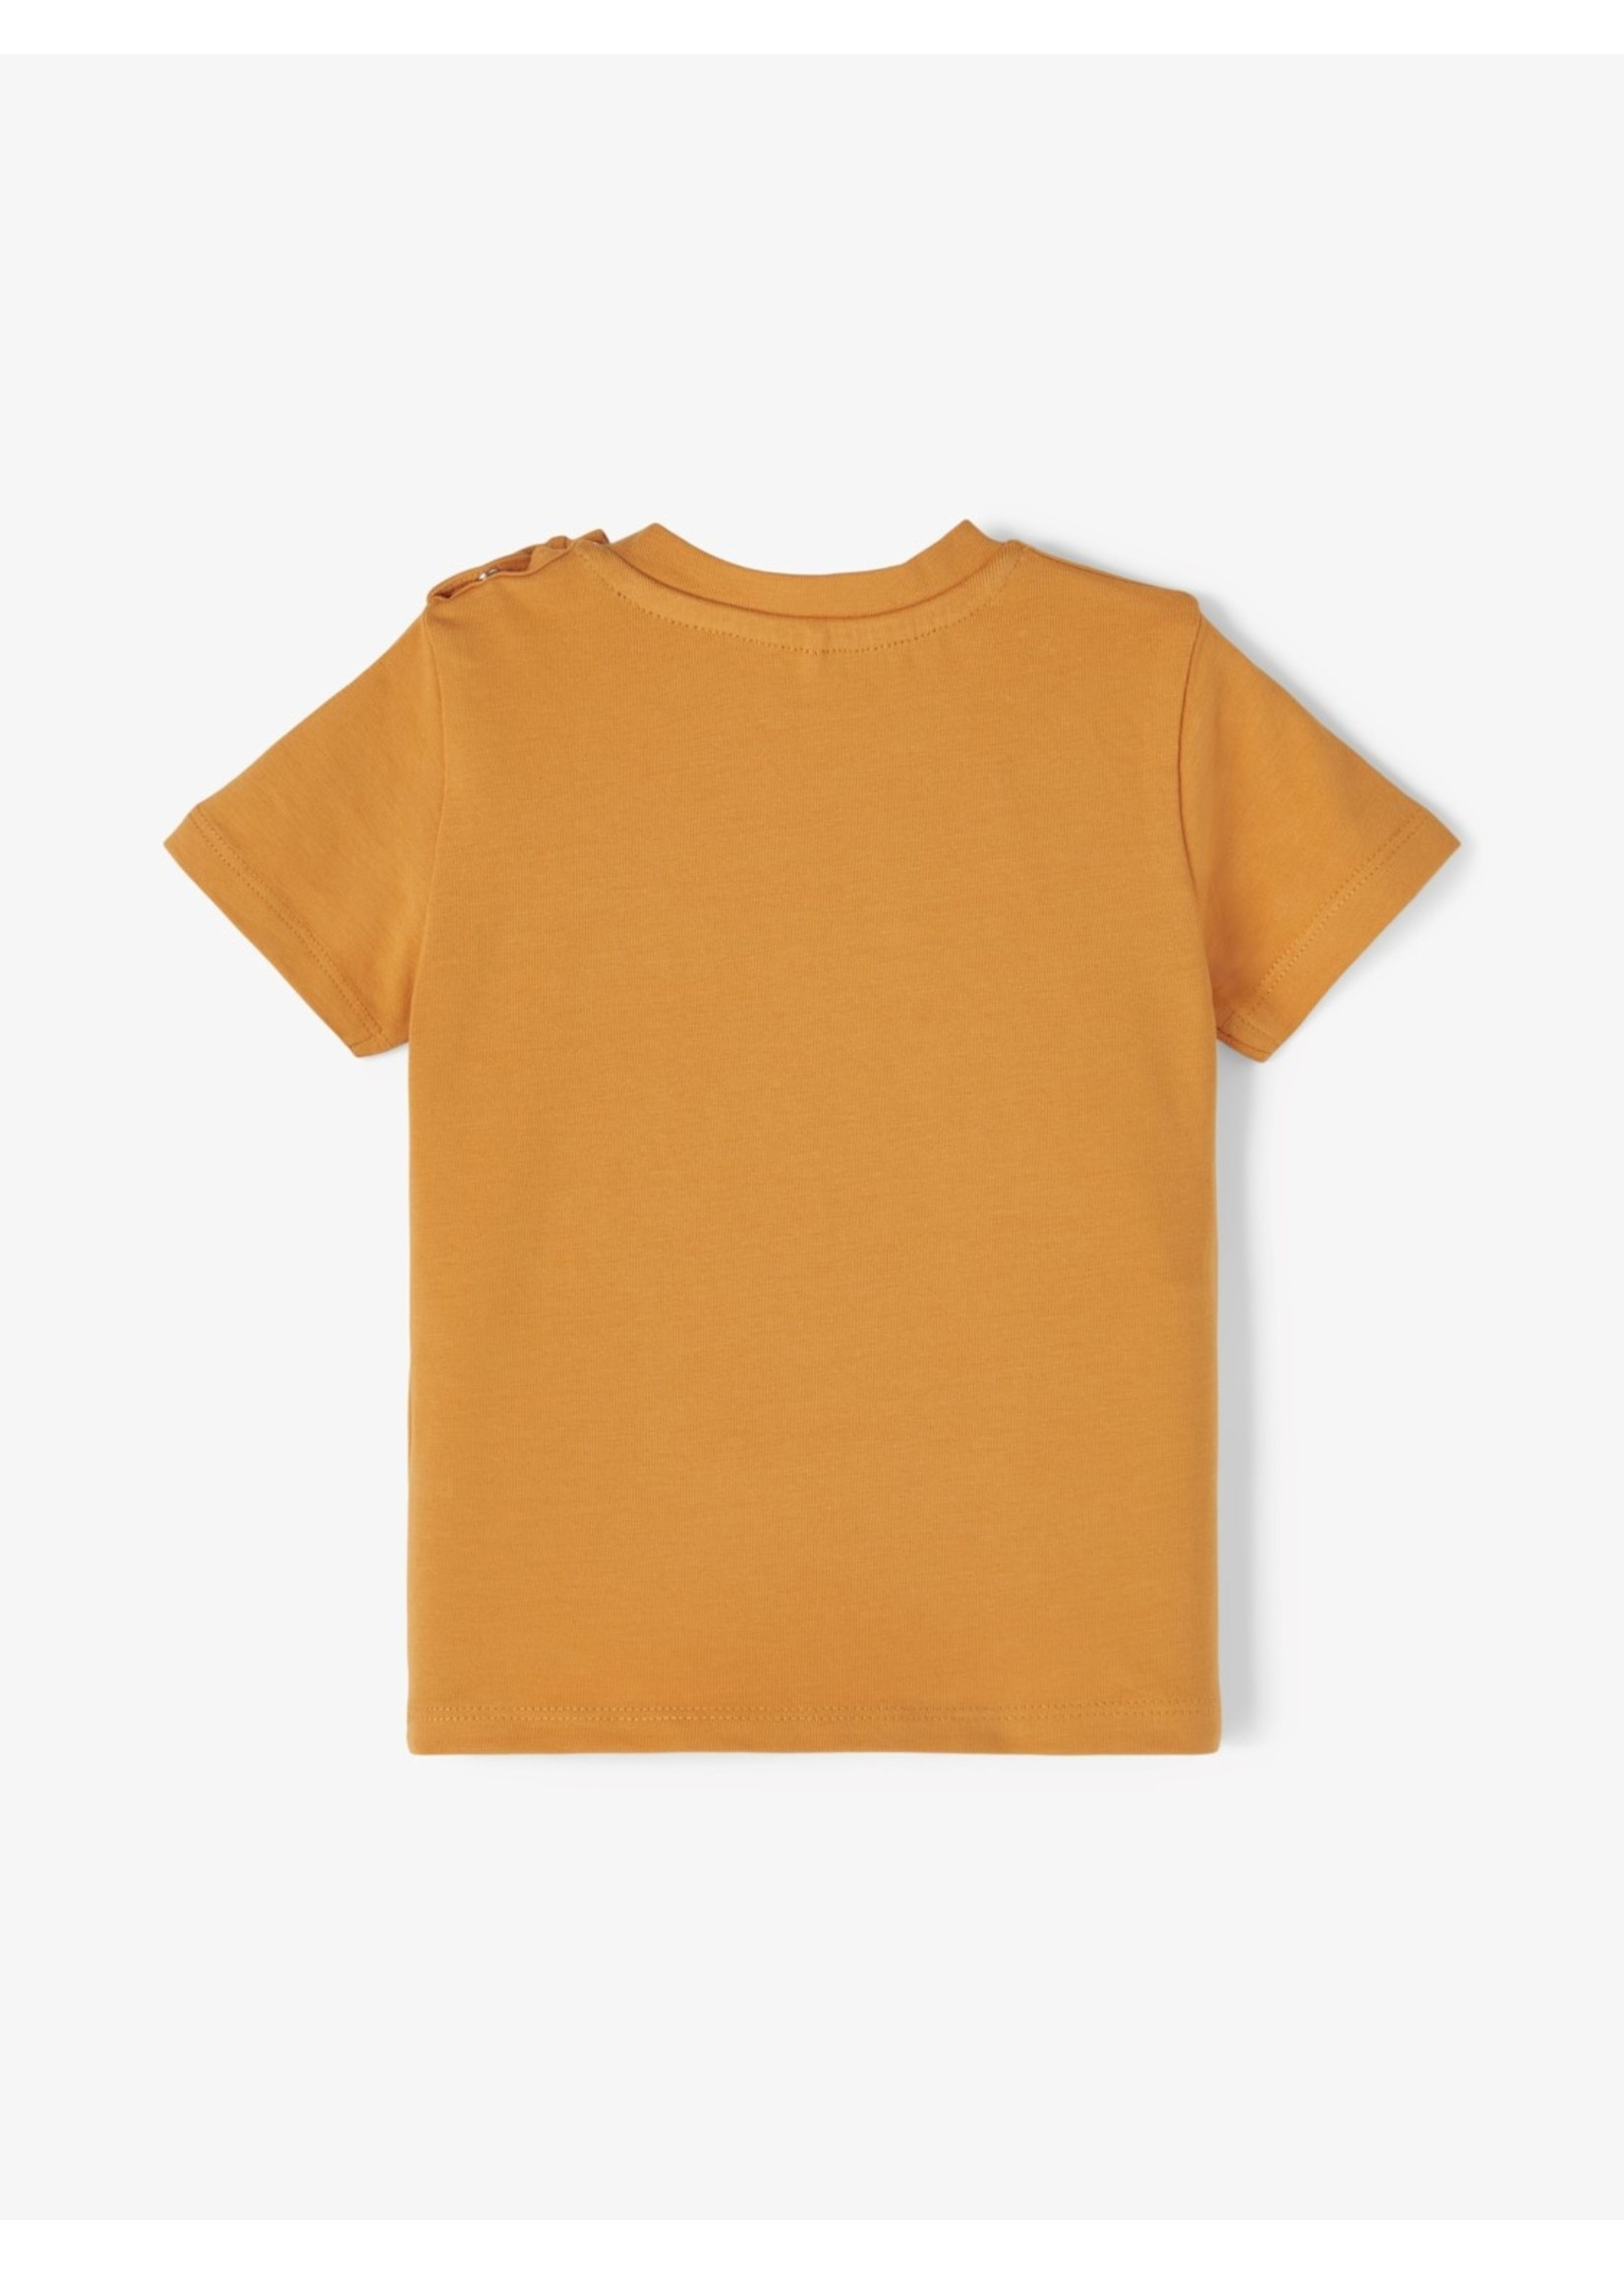 Name it Shirt Spruce  Yellow